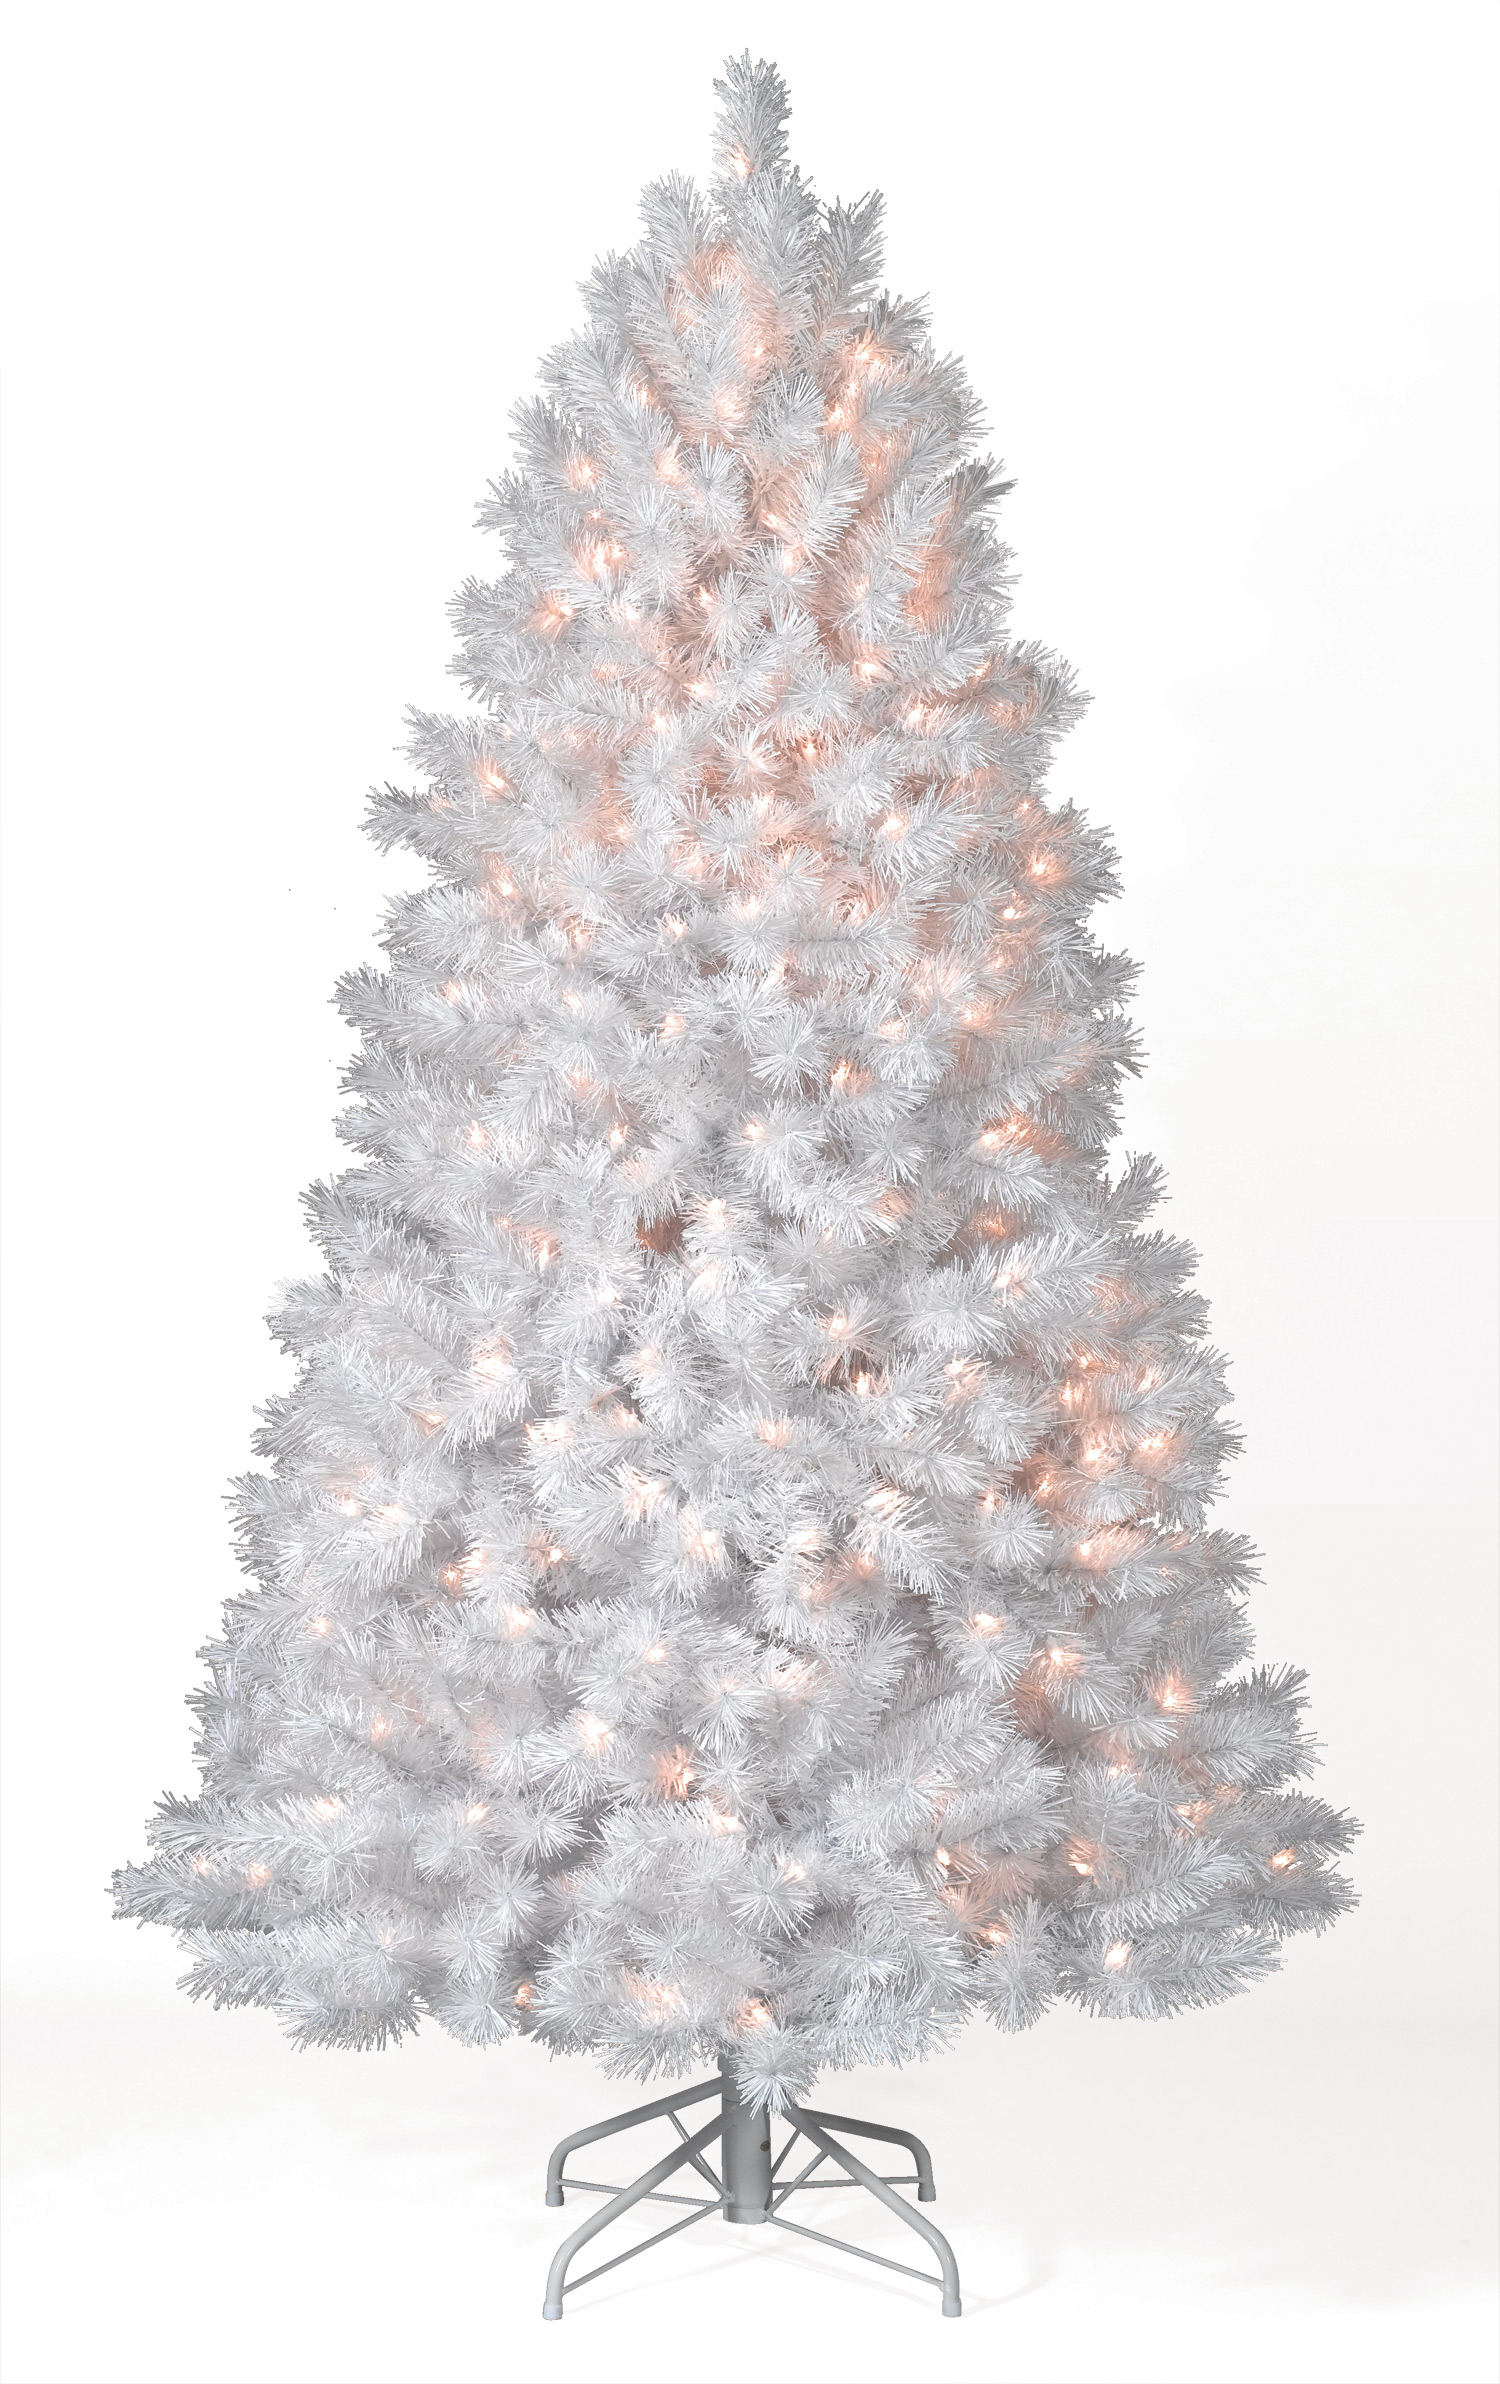 6 Ft Shimmering White Christmas Tree | Christmas Tree Market